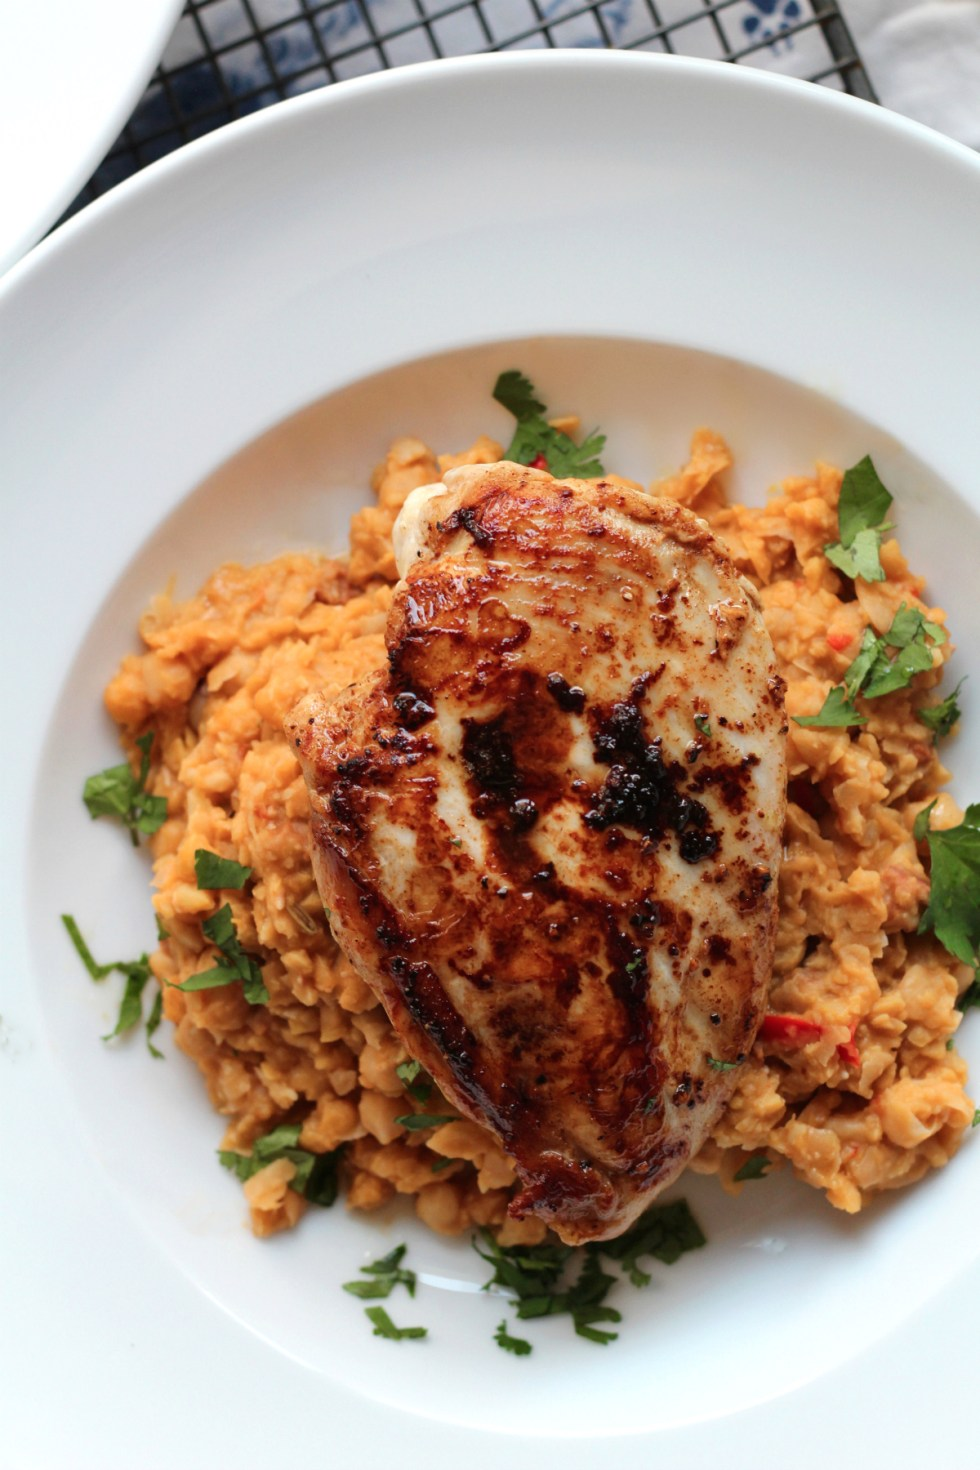 This chicken with chorizo and chickpea mash is a ridiculously easy midweek meal. Yum!